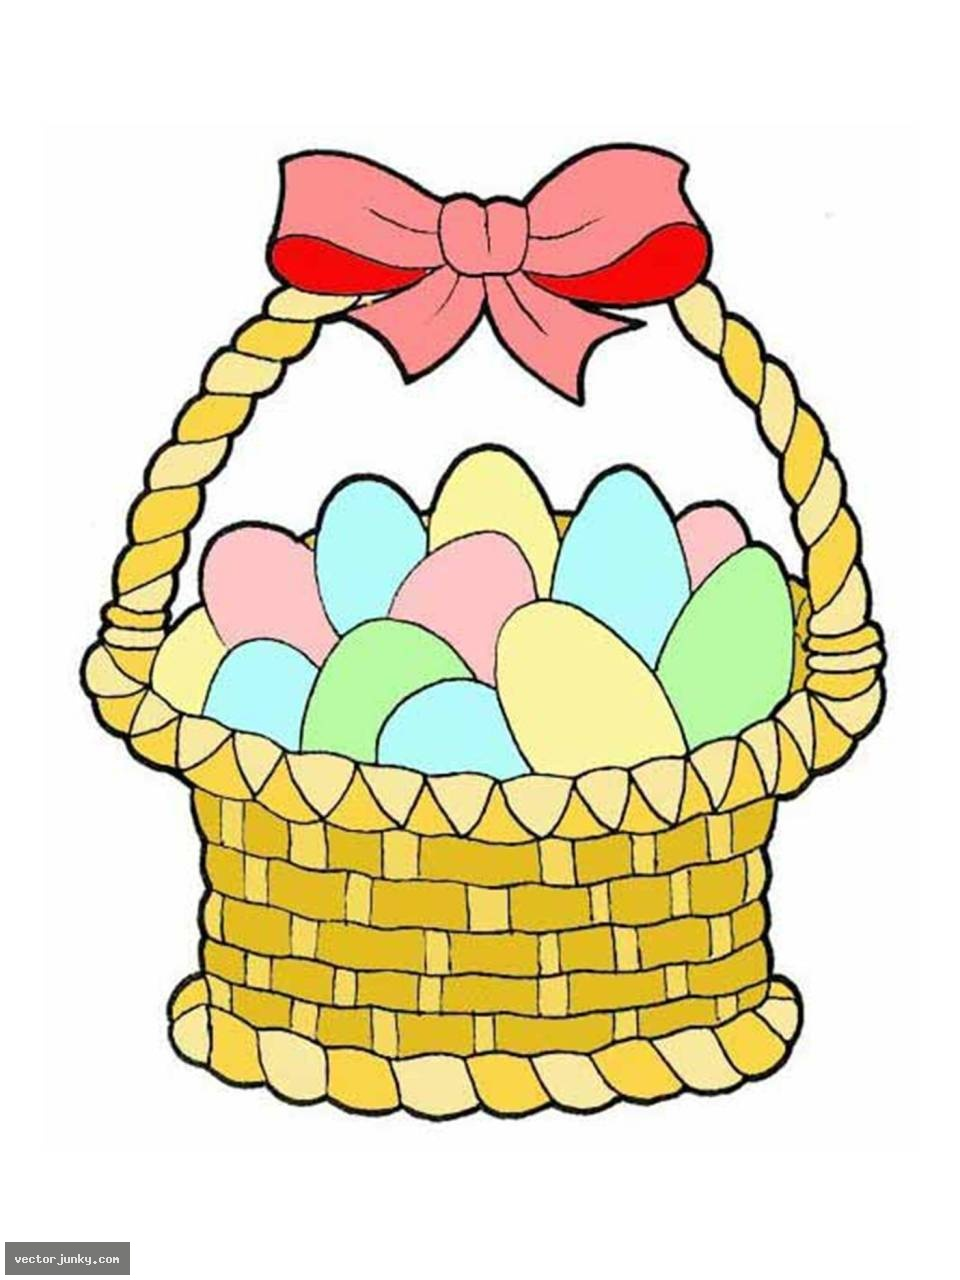 960x1280 Easter Egg Basket Clip Art